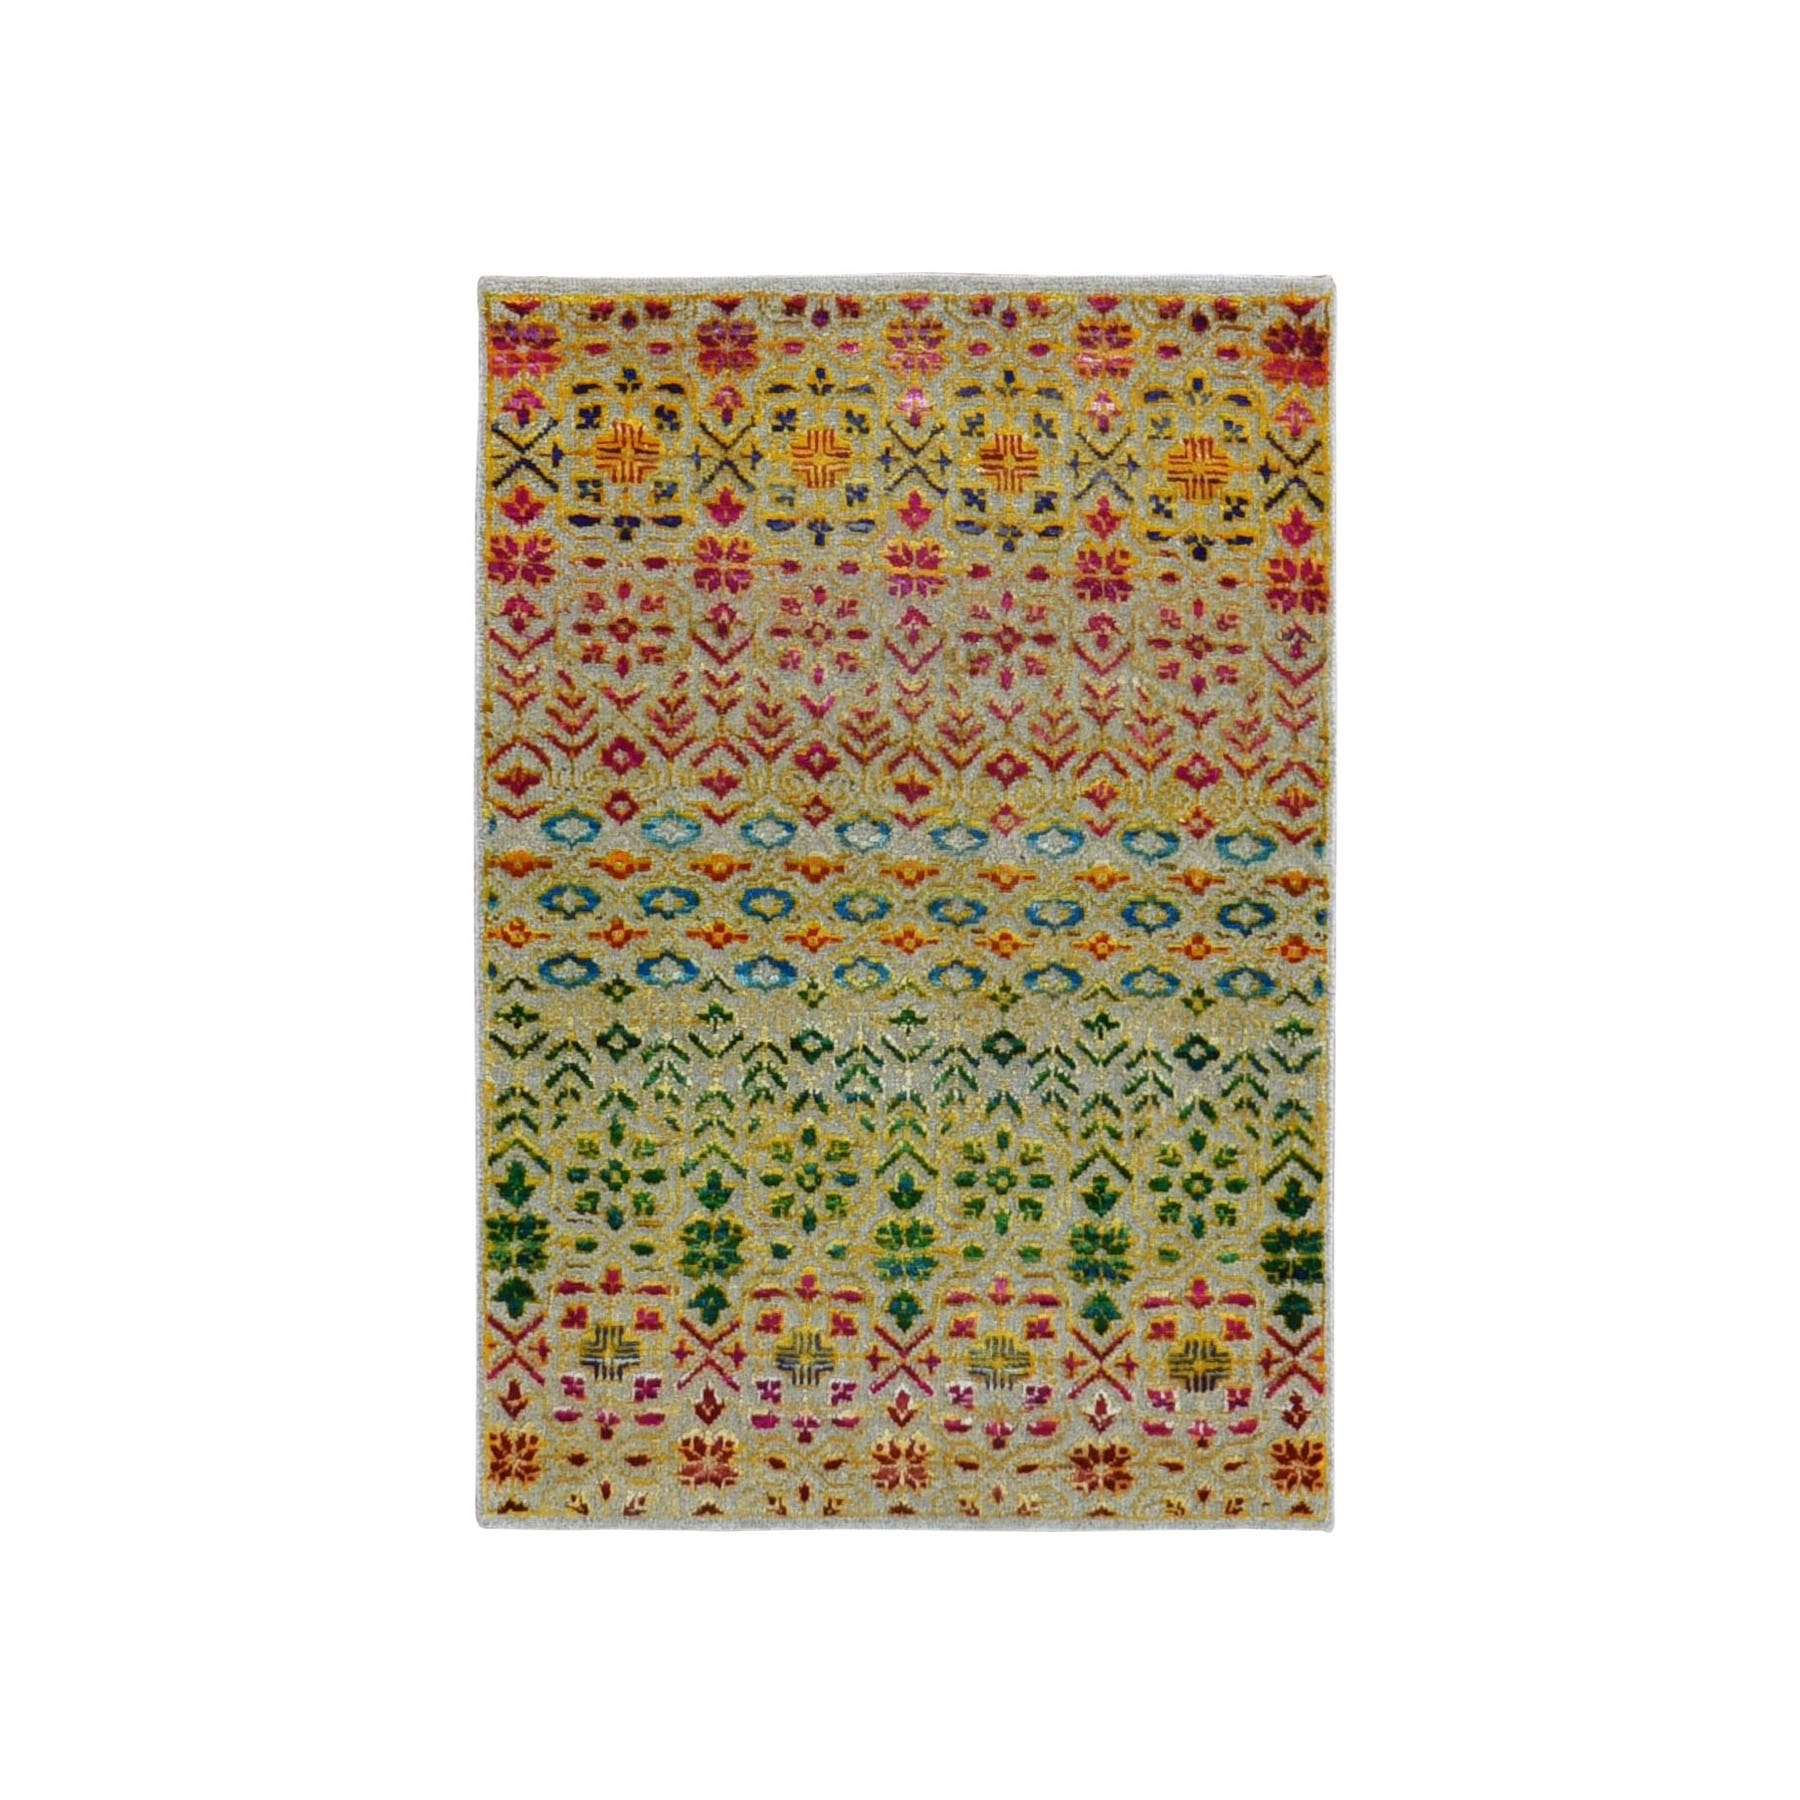 2'X3' Colorful Grass Design Sari Silk Textured Wool Modern Hand Knotted Oriental Rug moad9690